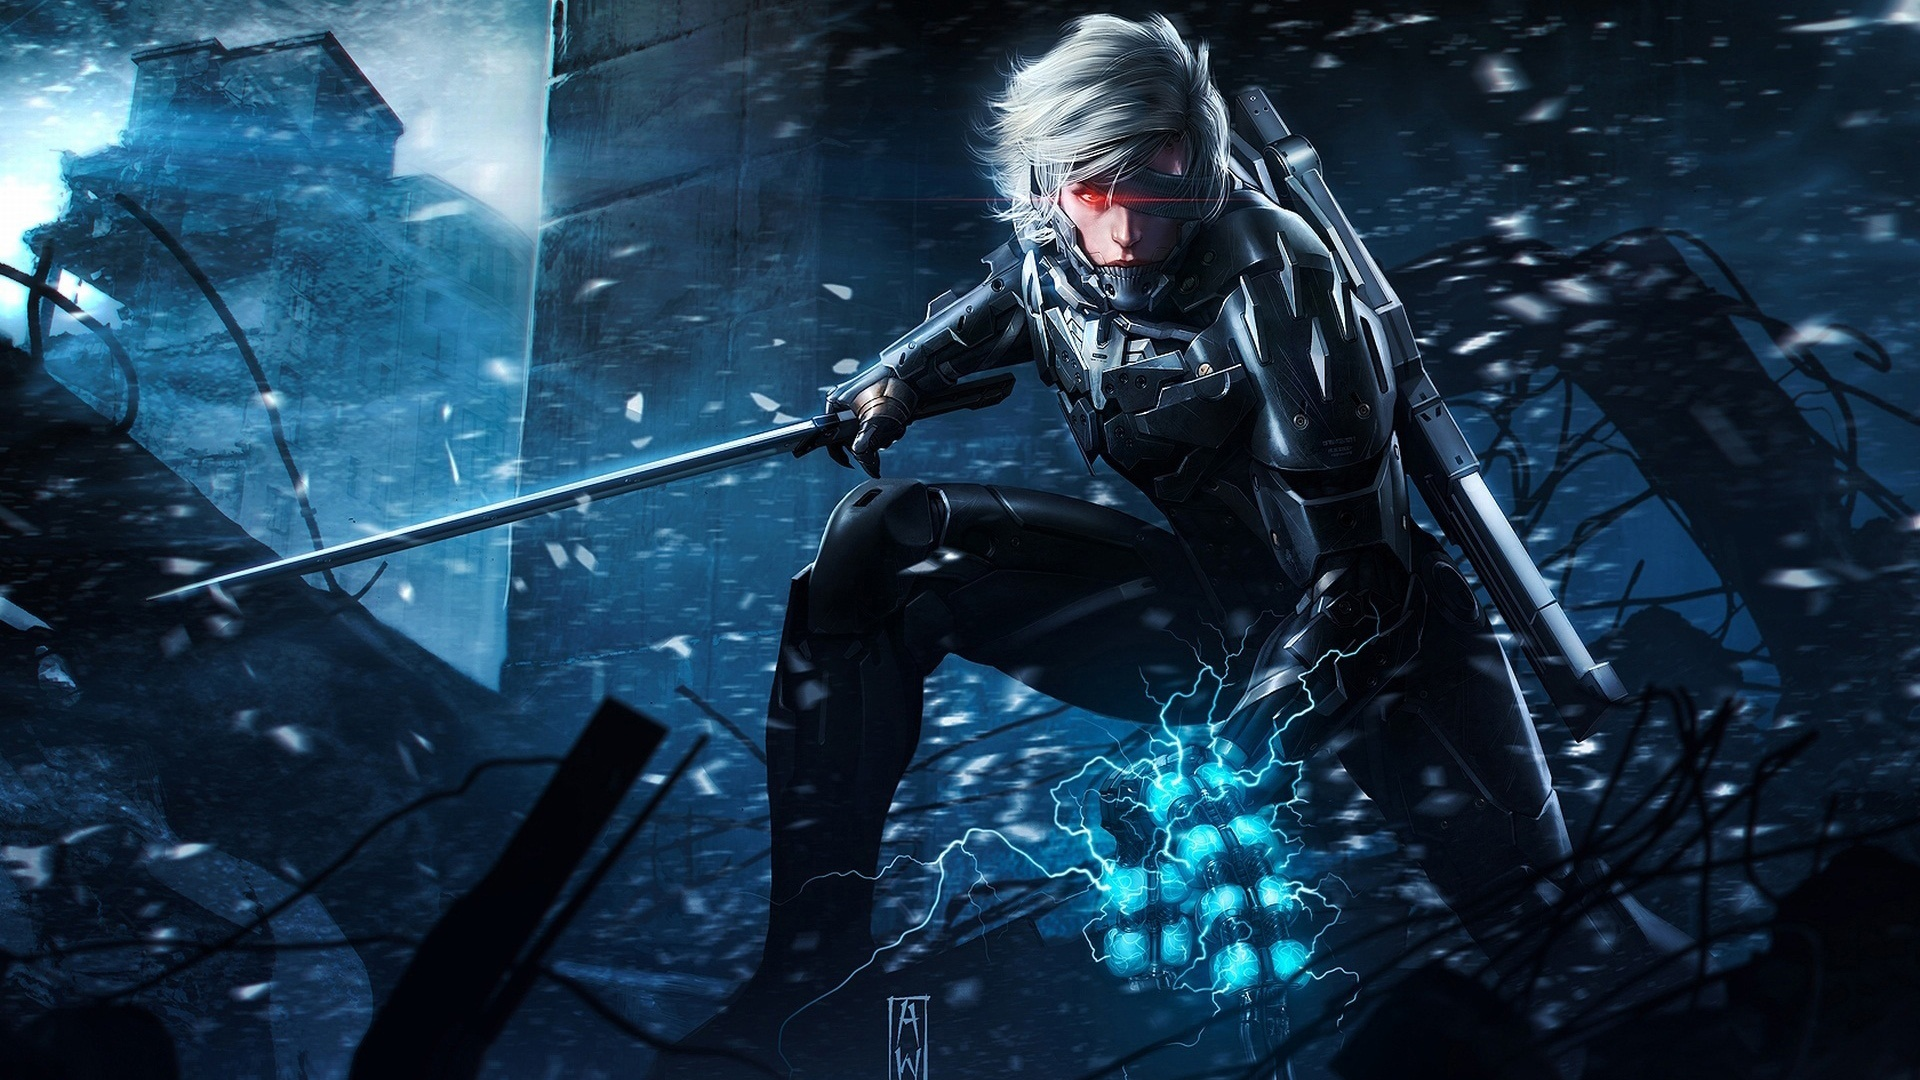 10 Latest Pc Gaming Wallpaper 1920x1080 Full Hd 1920 1080: Metal Gear Rising Revengeance Game Wallpapers In Jpg